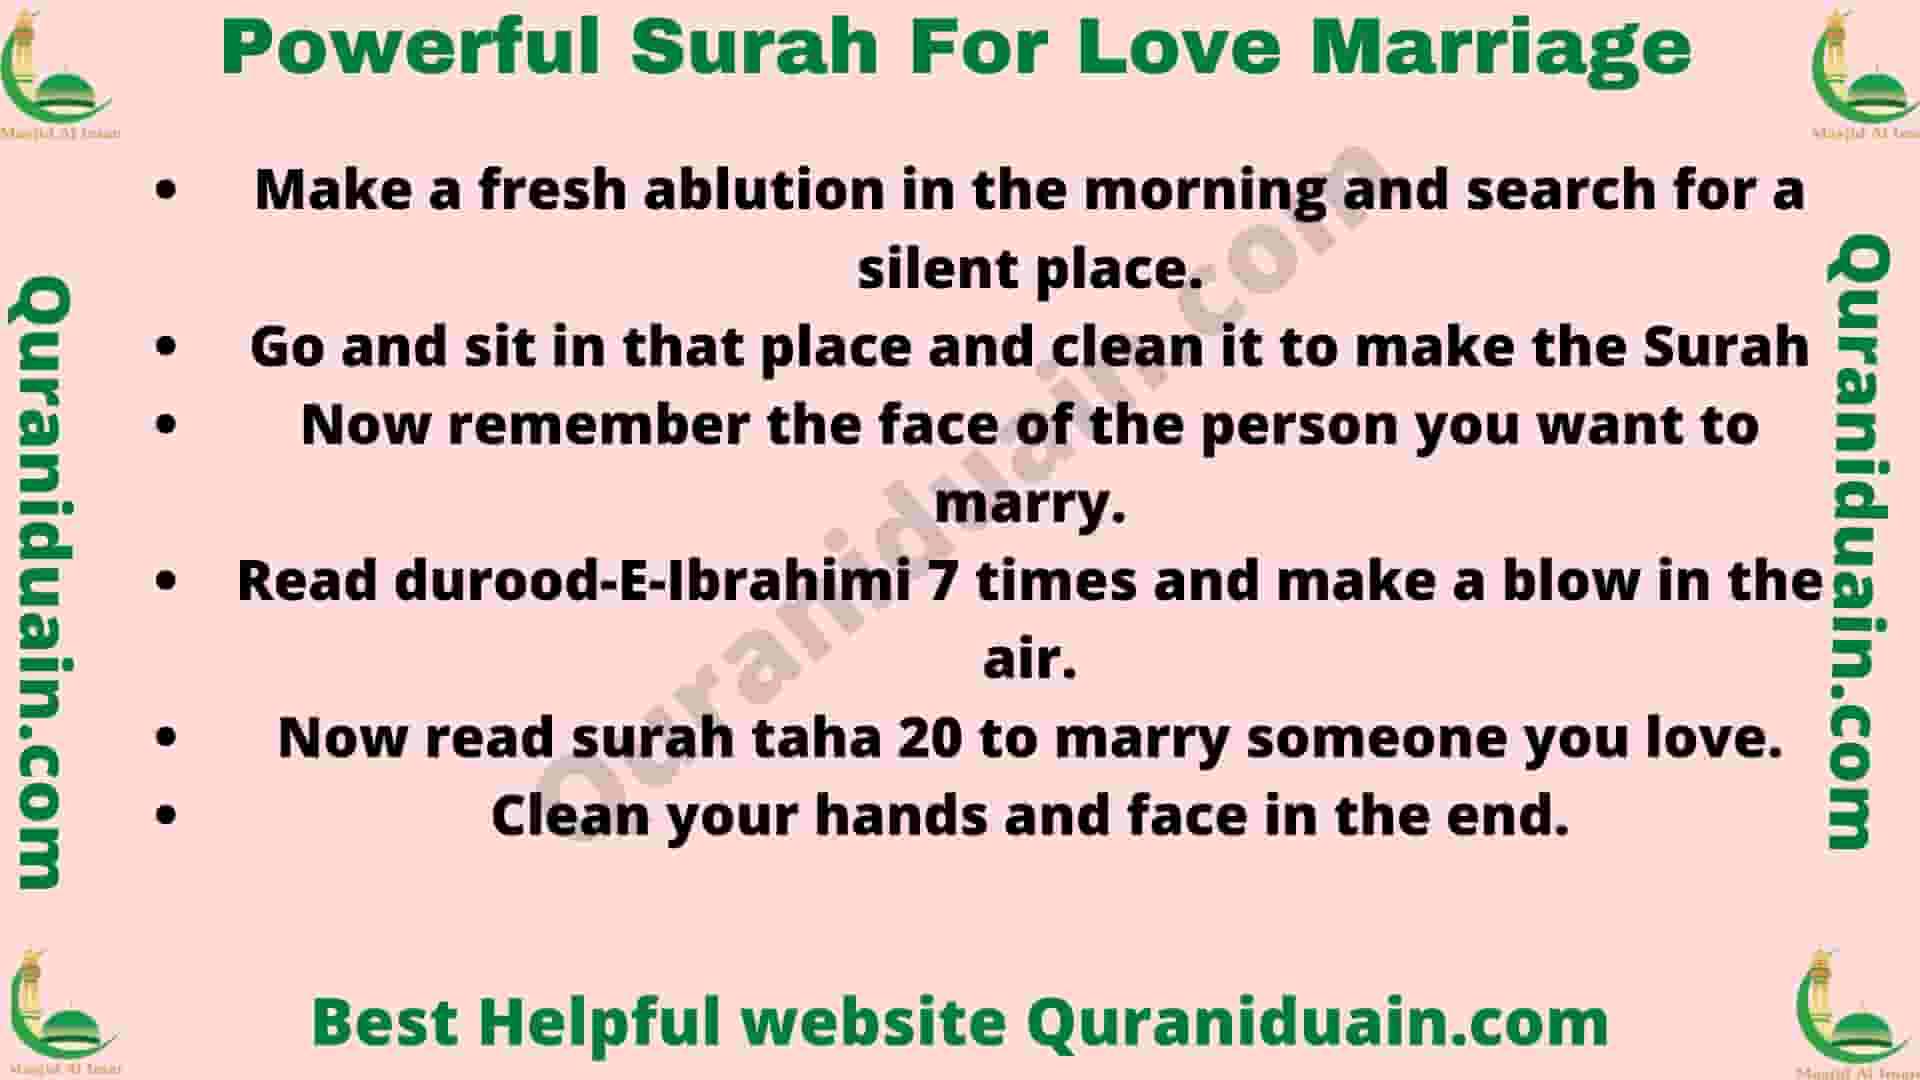 Powerful Surah For Love Marriage